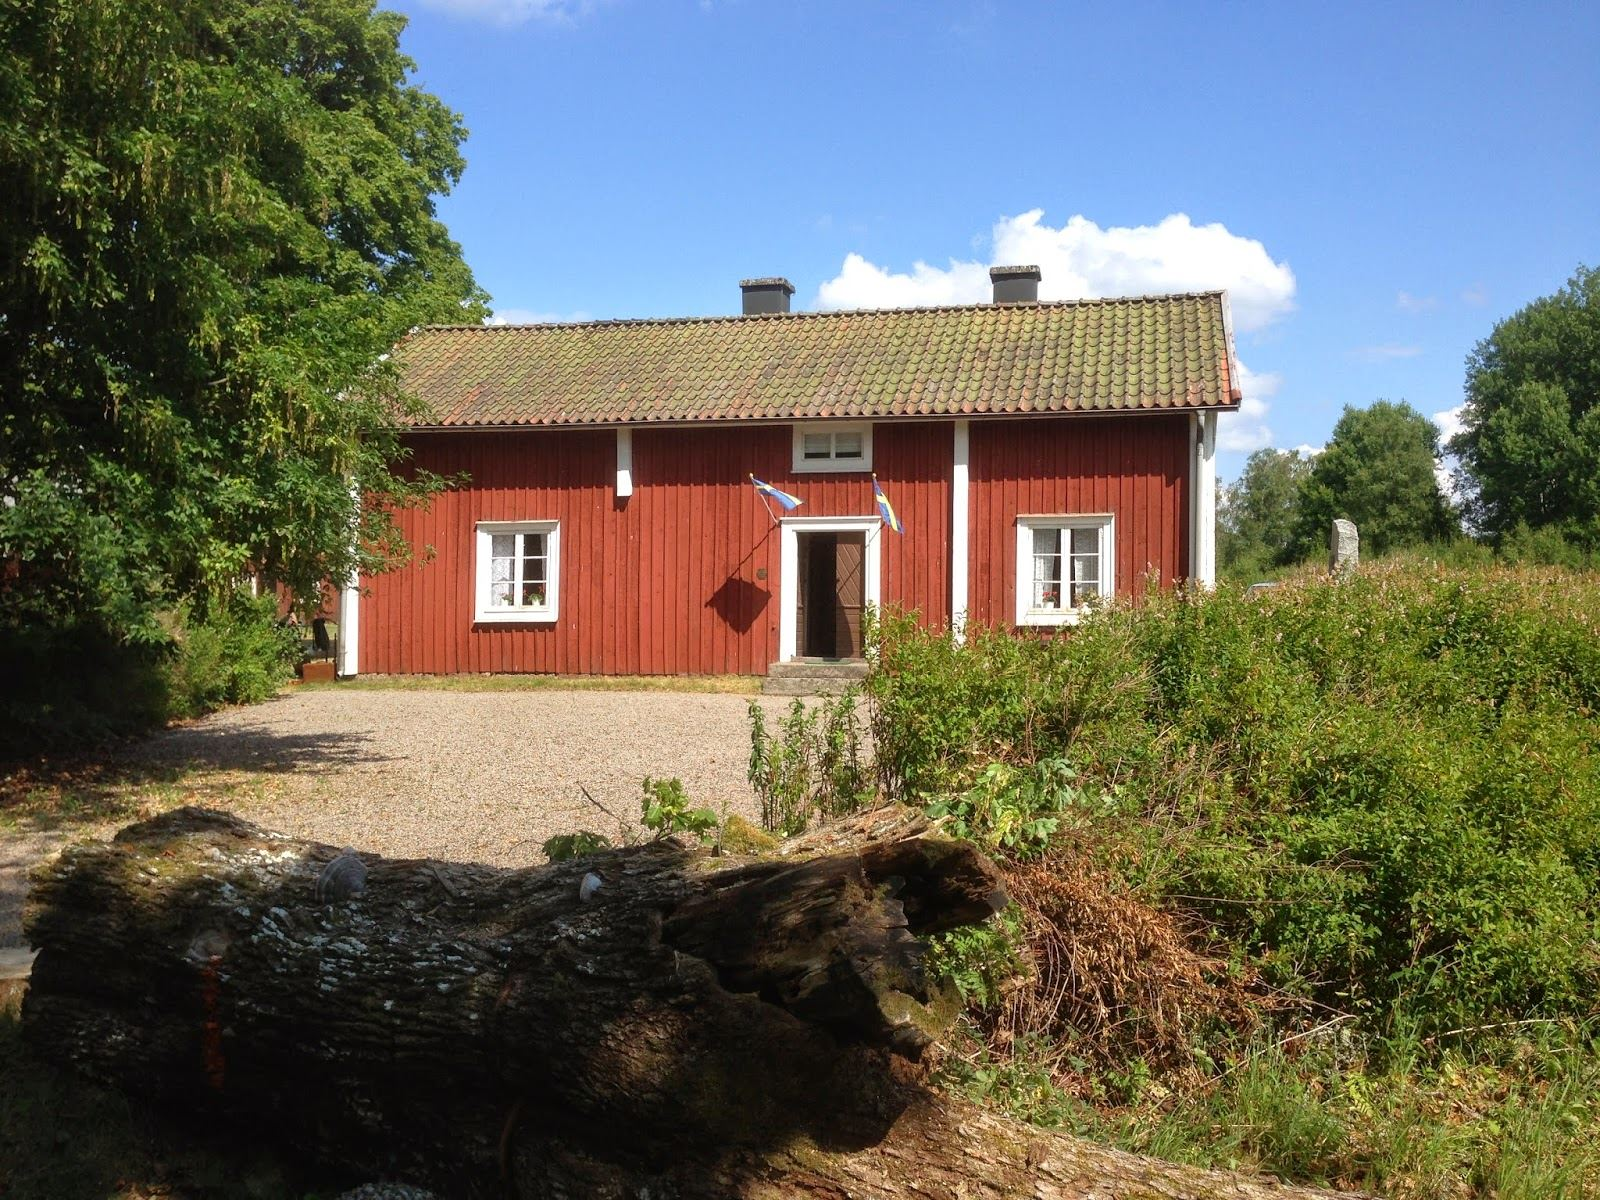 Snugge - the birthplace of opera singer Christina Nilsson